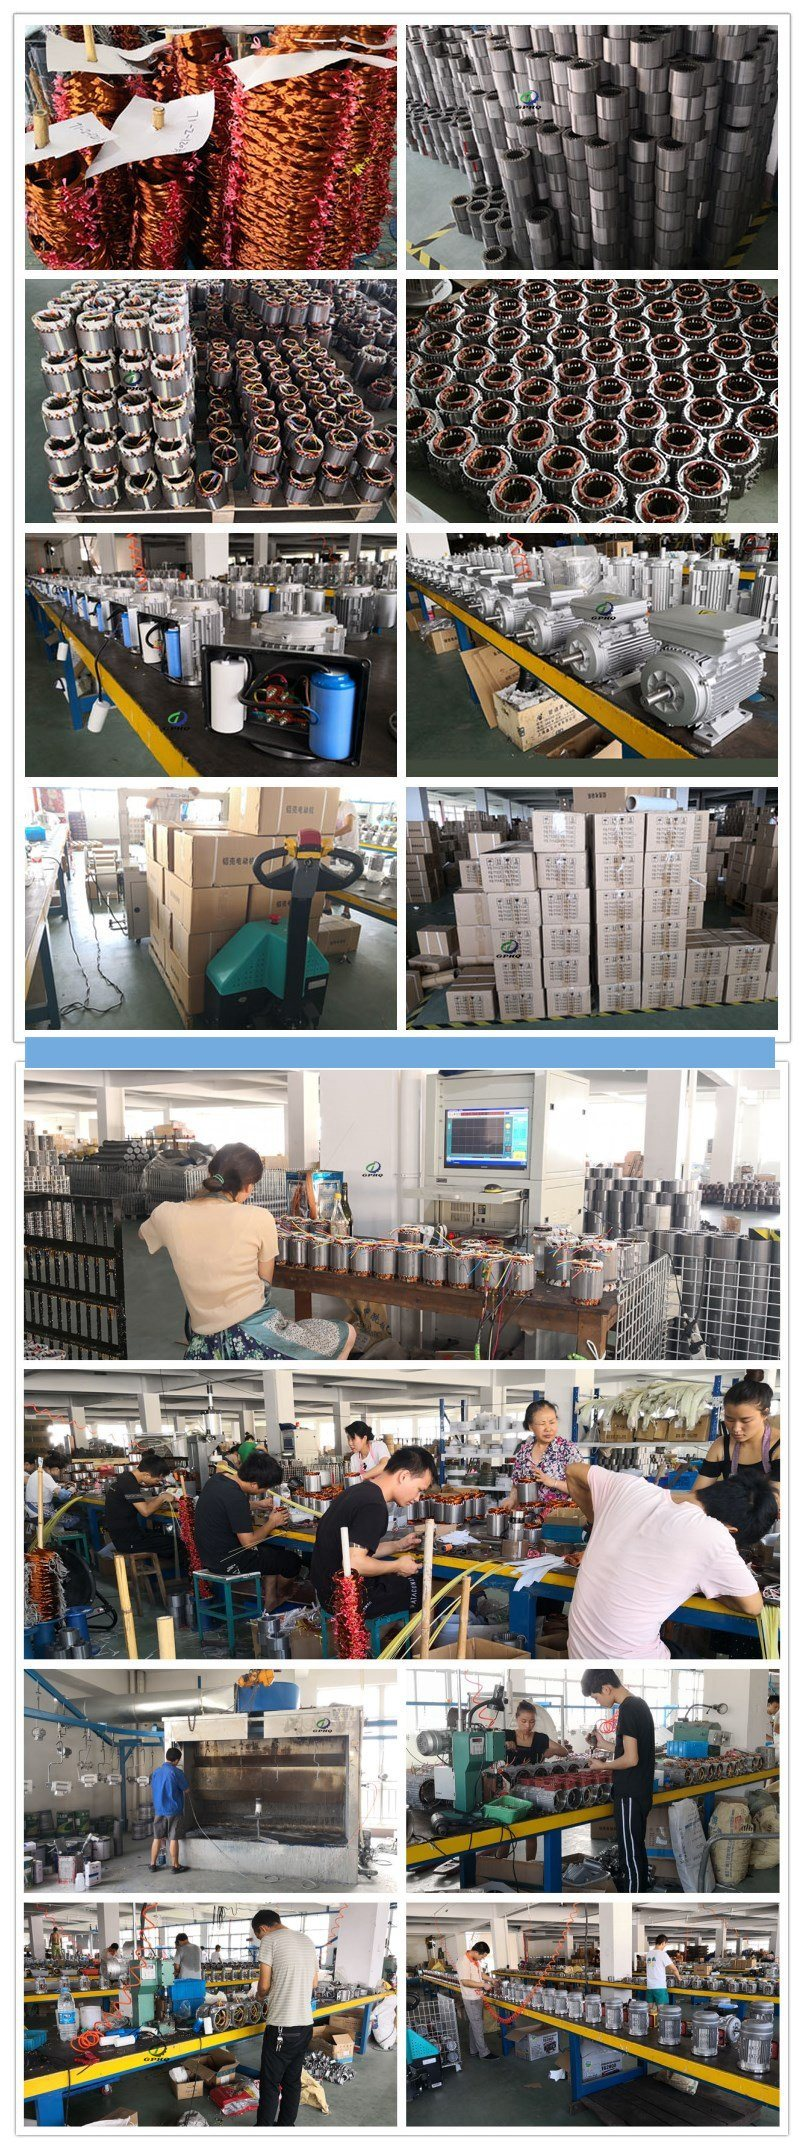 Ml90s 2 2hp 15kw 2cv 230v Ac Electric Motor China Wiring Our Advantages 1 Great Quality Of Materialscold Silicon Steel 100 Copper Wire Aluminum Frame 2colorful 3clear Nameplate